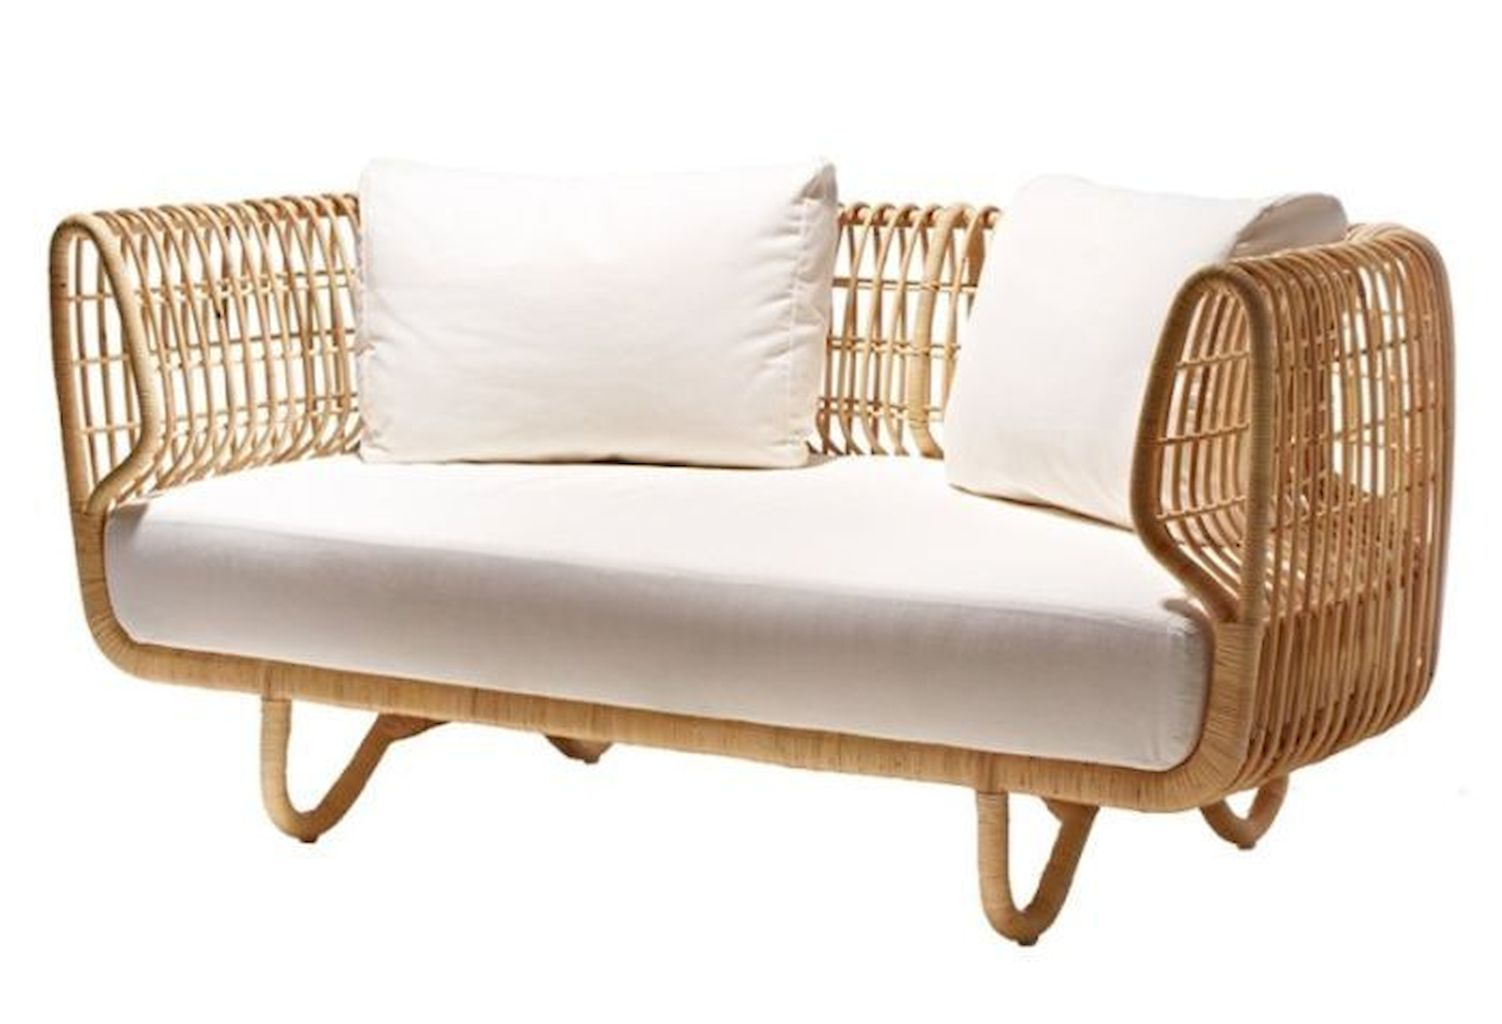 Rattan Furniture090